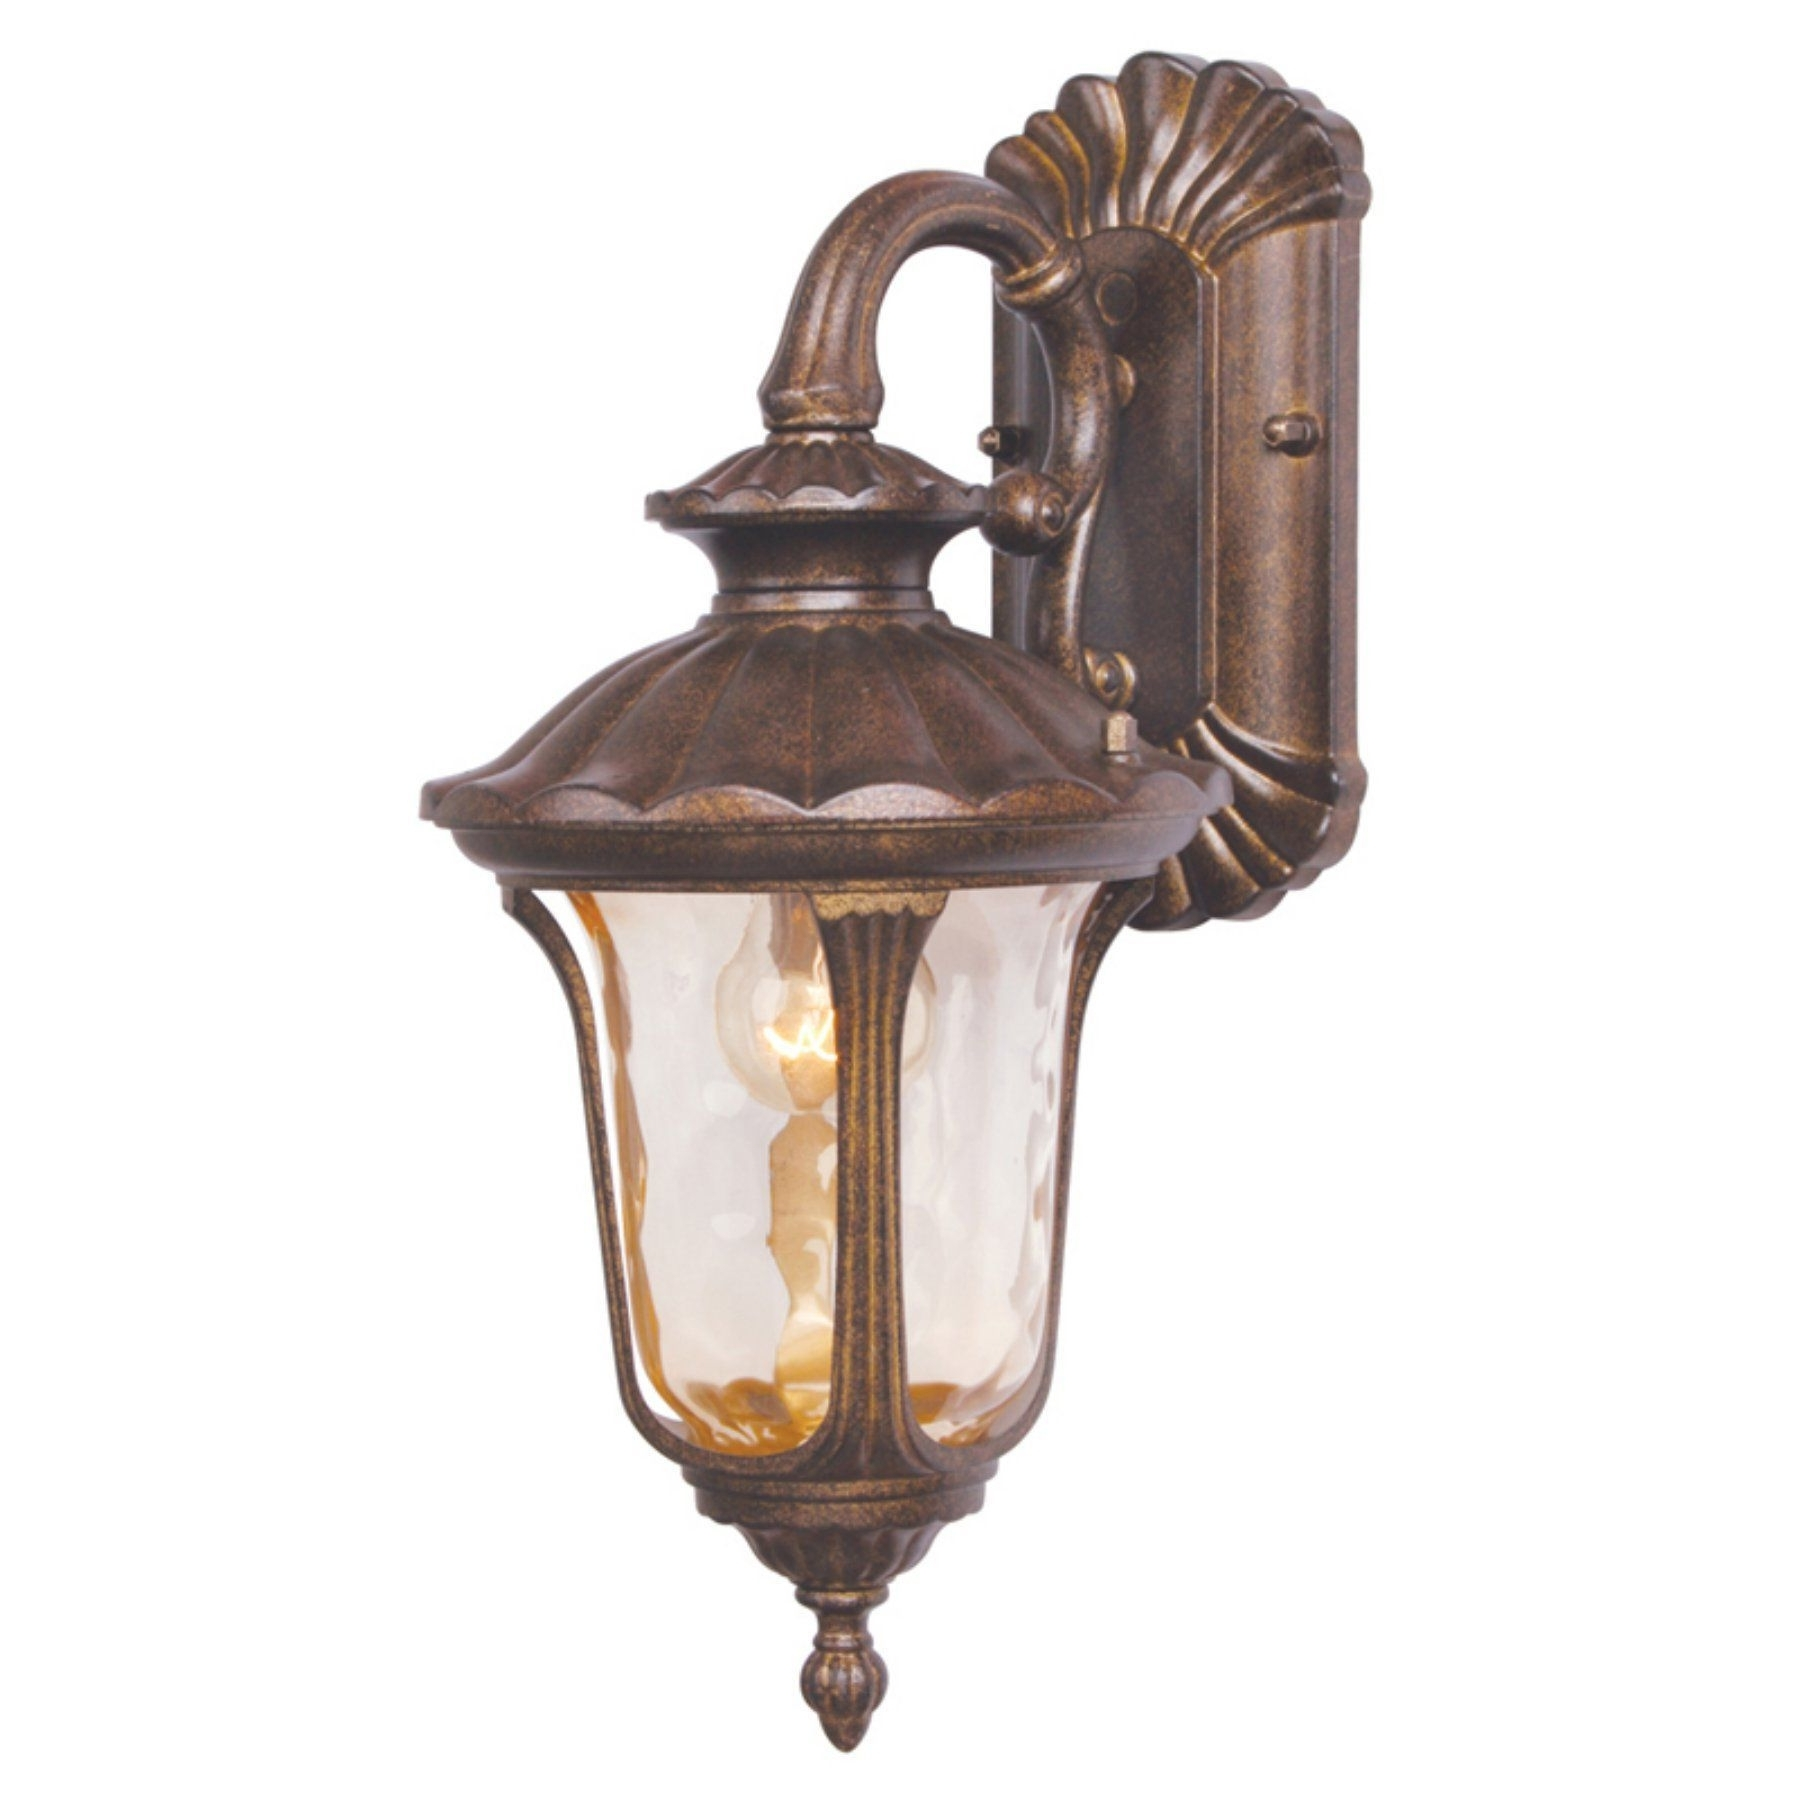 Livex Oxford 7651 50 Outdoor Hanging Wall Lantern – (View 11 of 20)